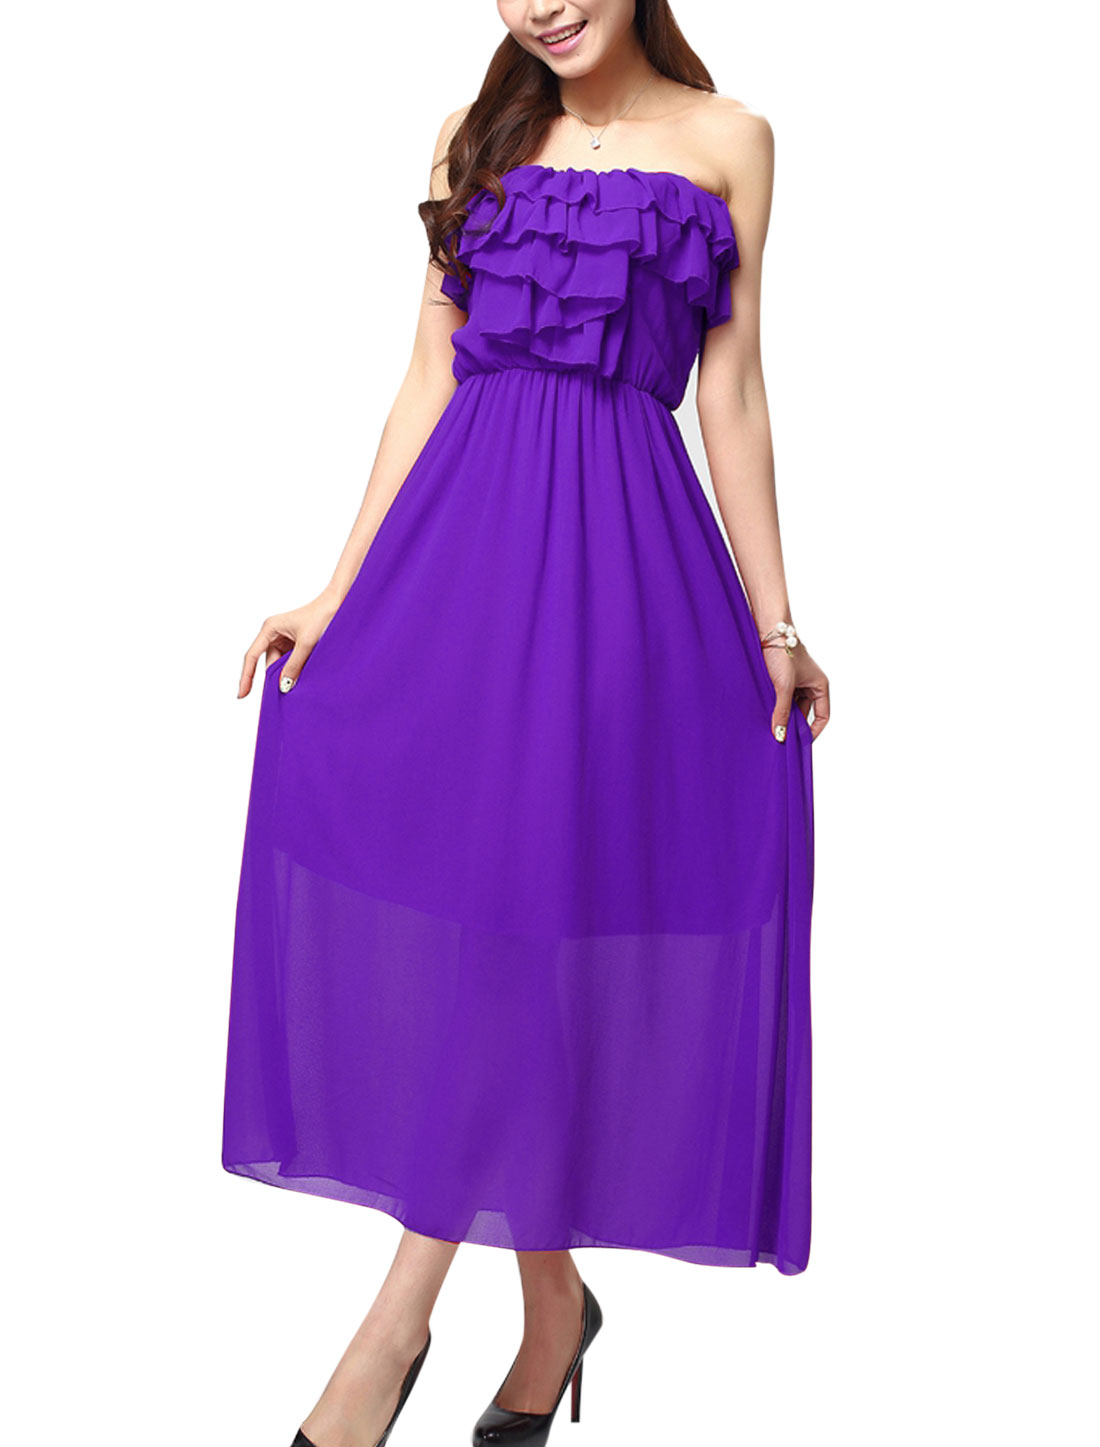 Women Invisible Shoulder Strap Bare Back Maxi Sexy Corset Dress Purple XS